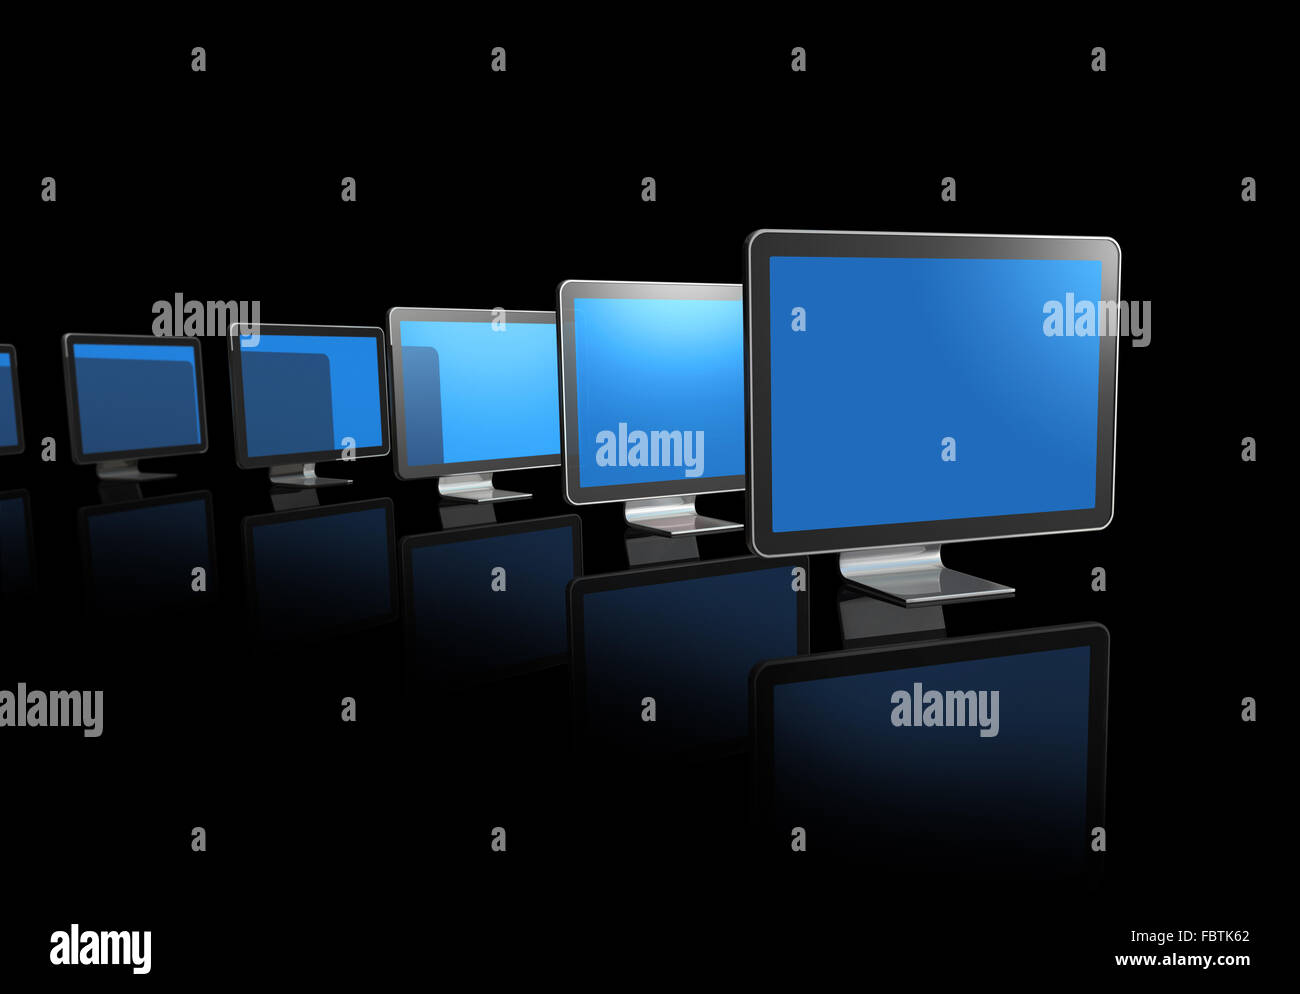 3D television screens - Stock Image